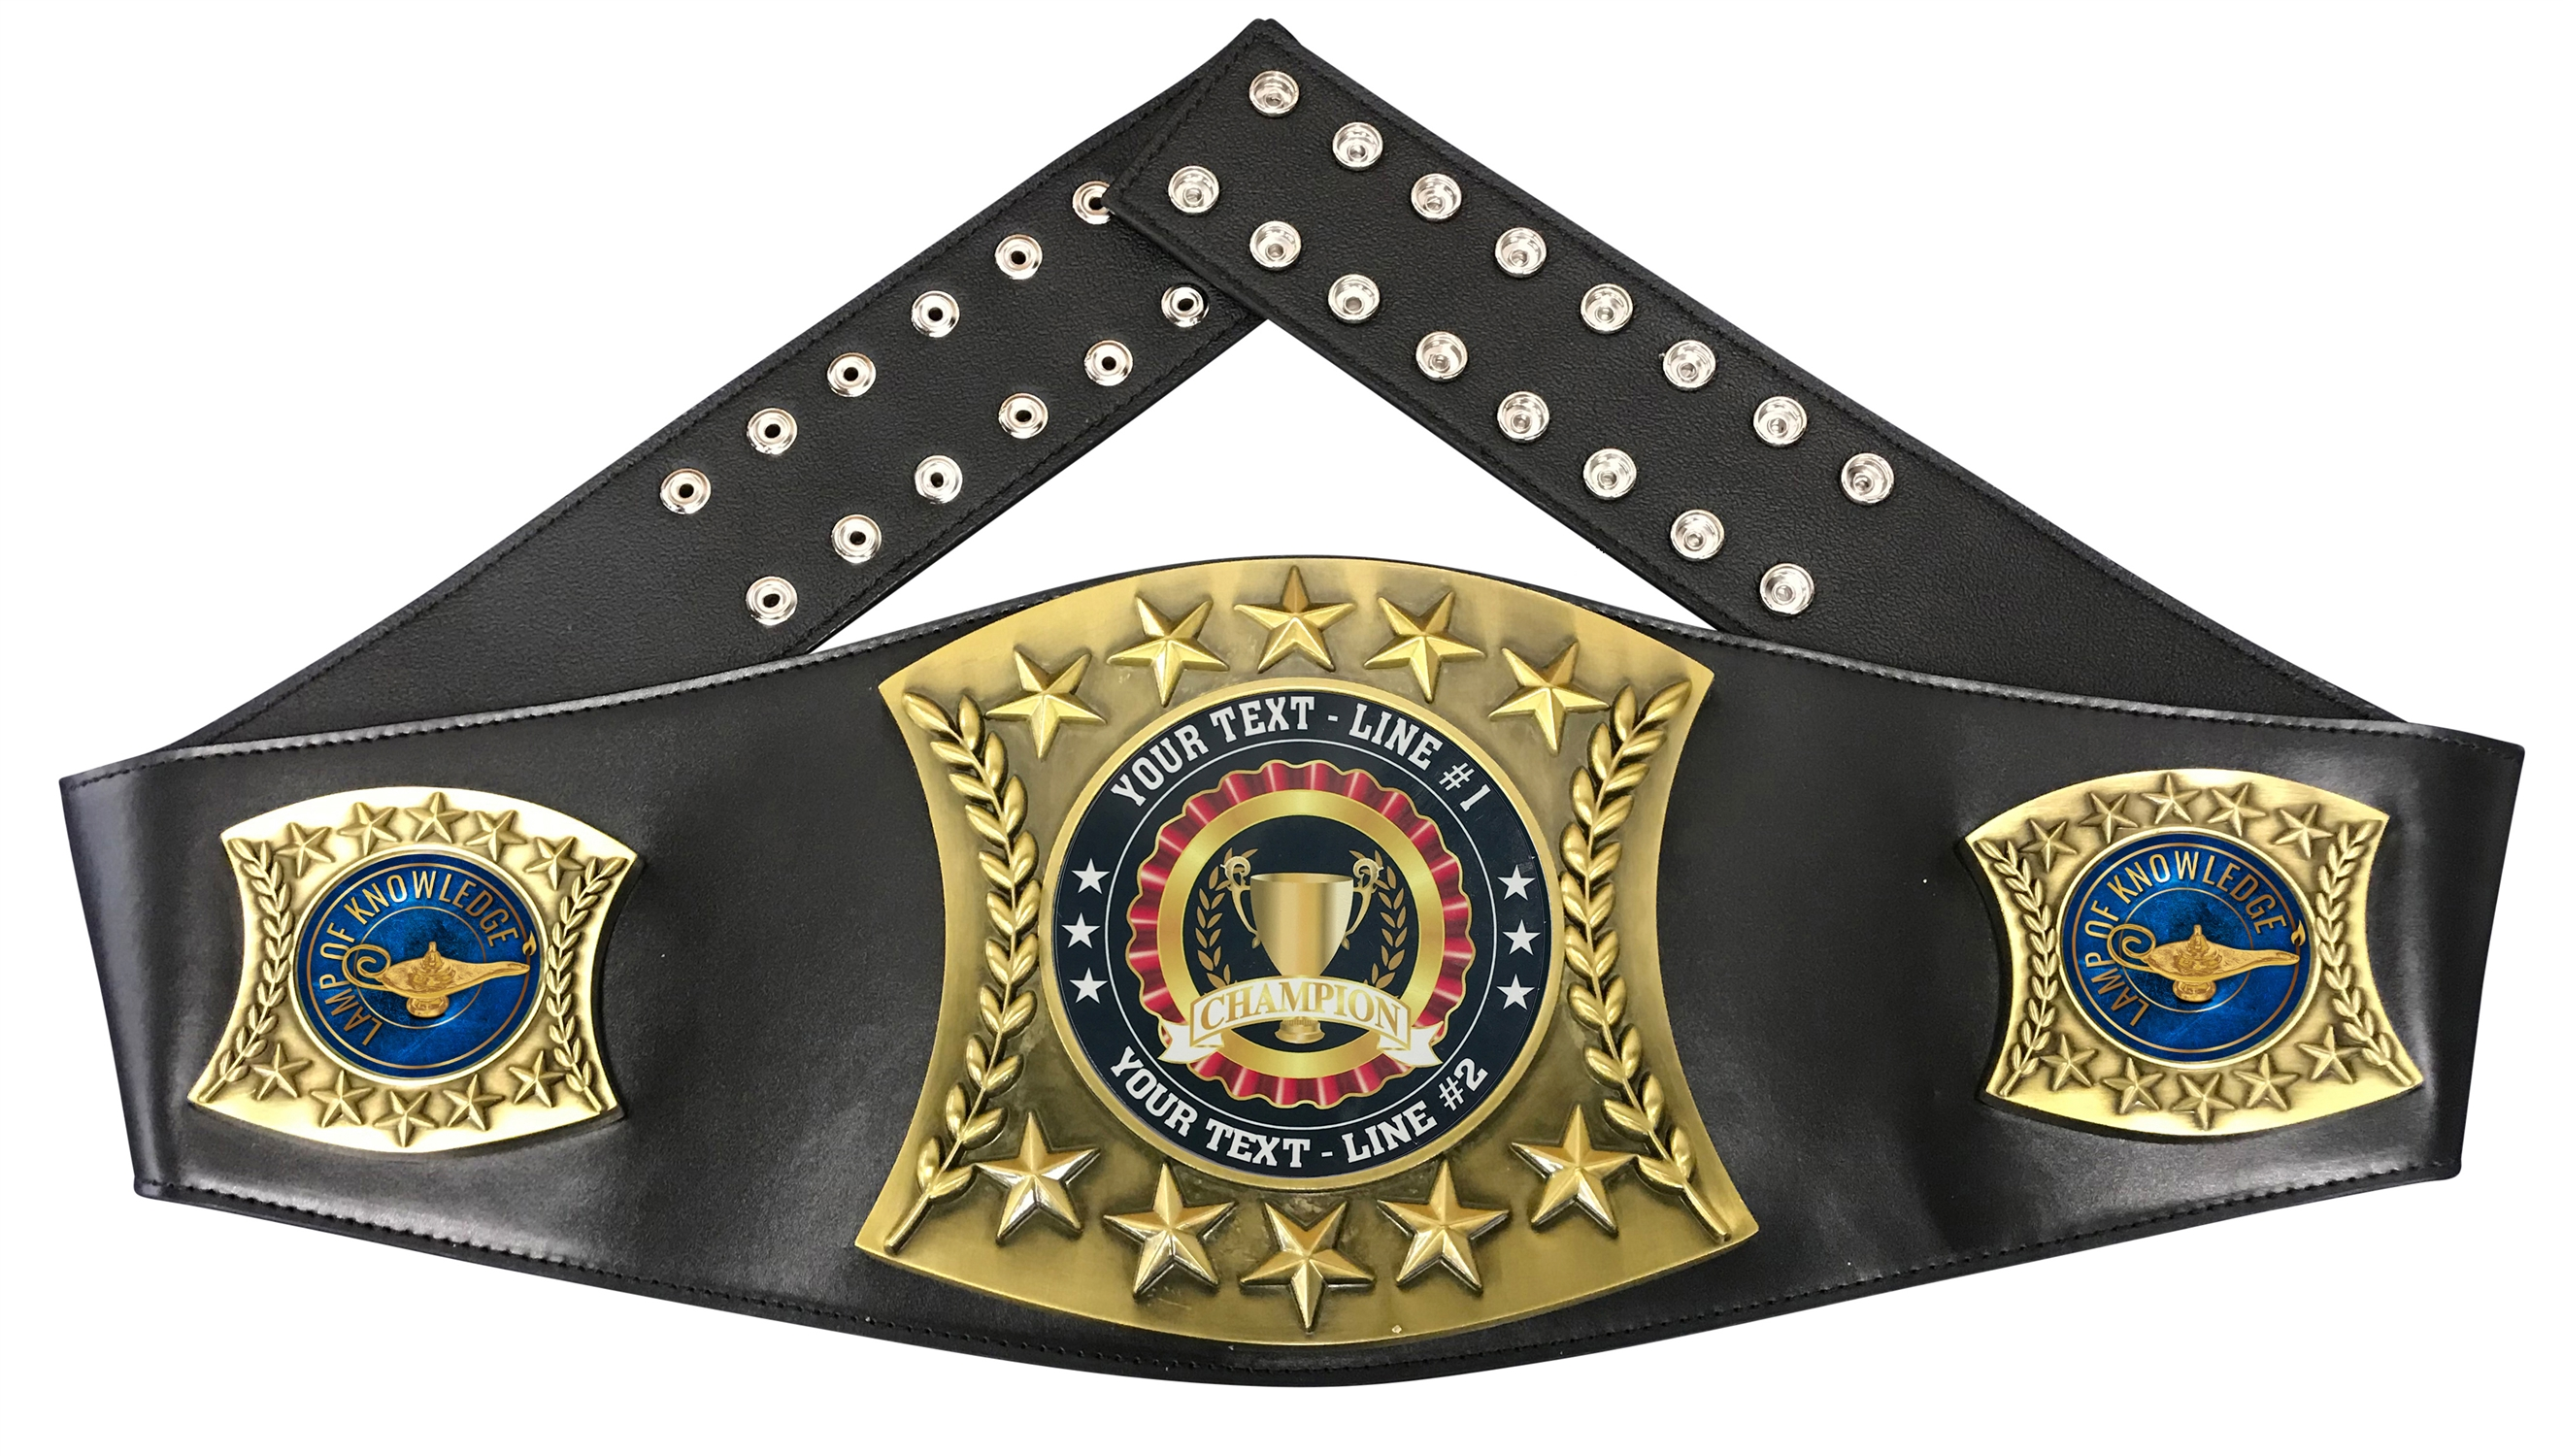 Lamp of Knowledge Personalized Championship Leather Belt